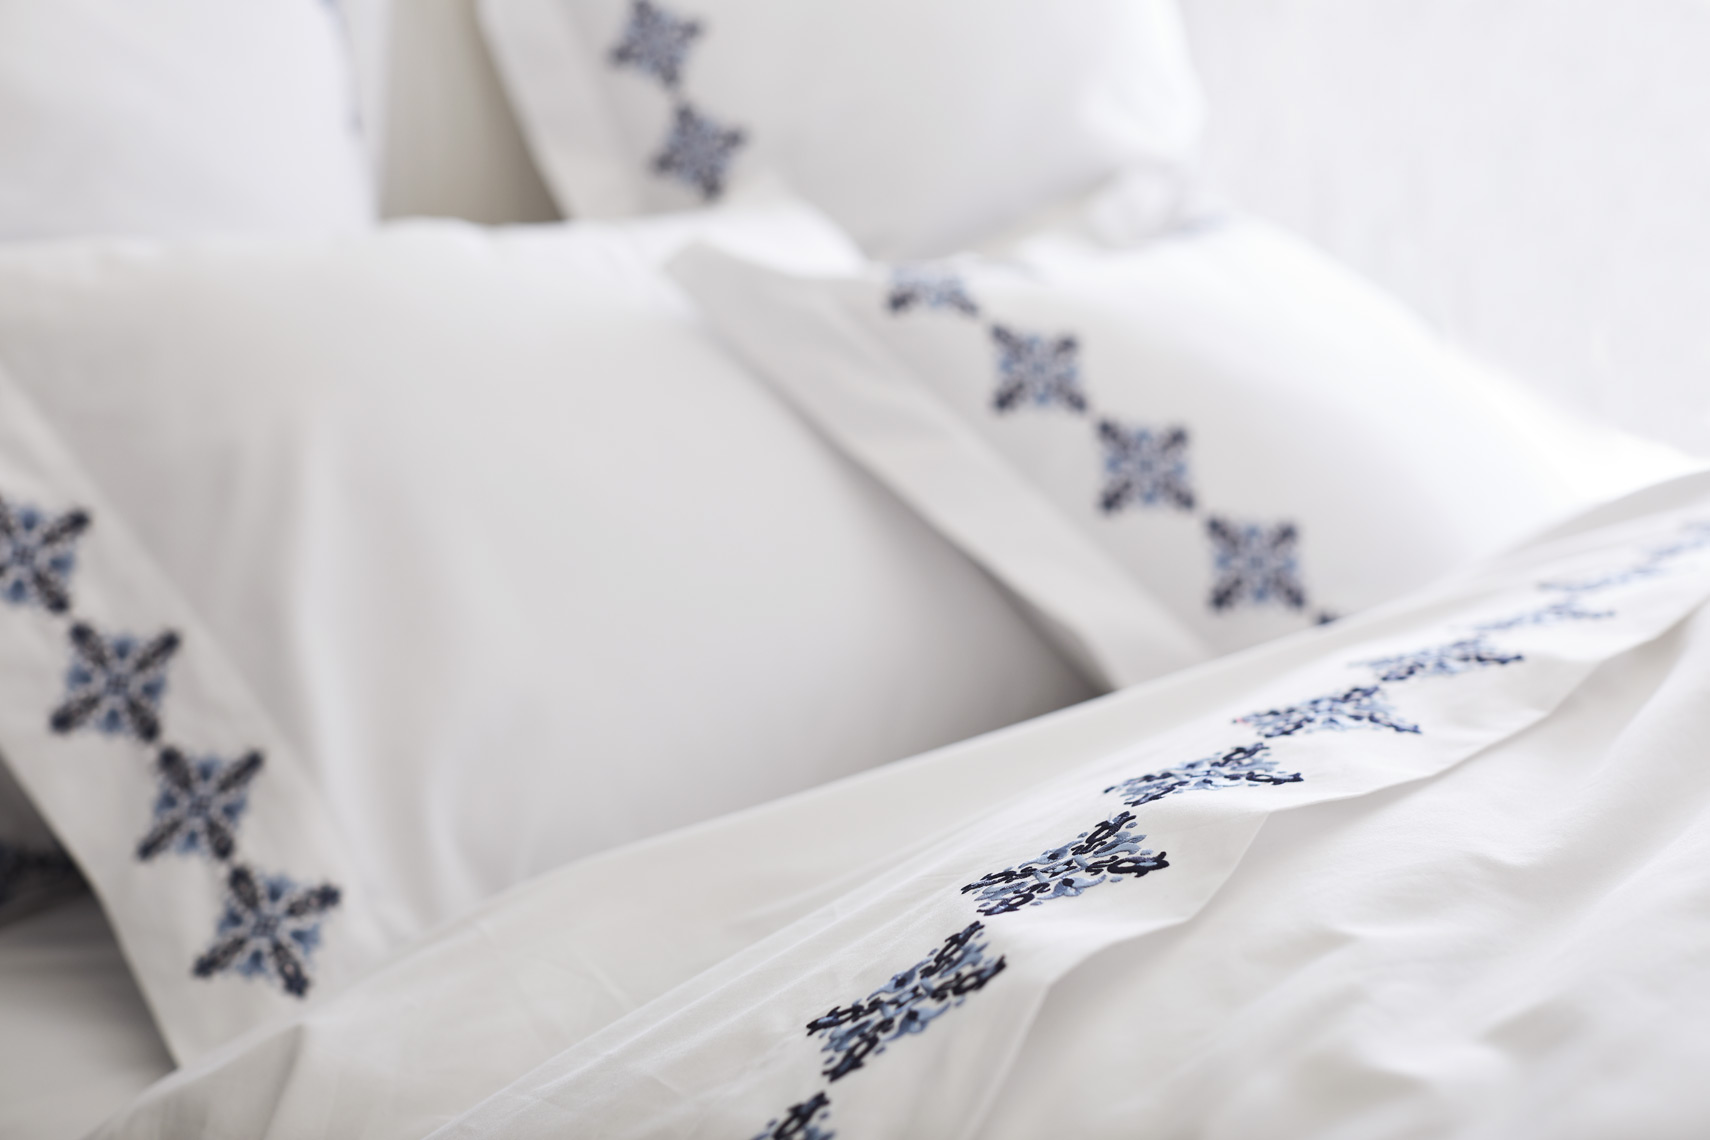 White pillows with blue pattern border on white bedding  Sean Dagen Photography